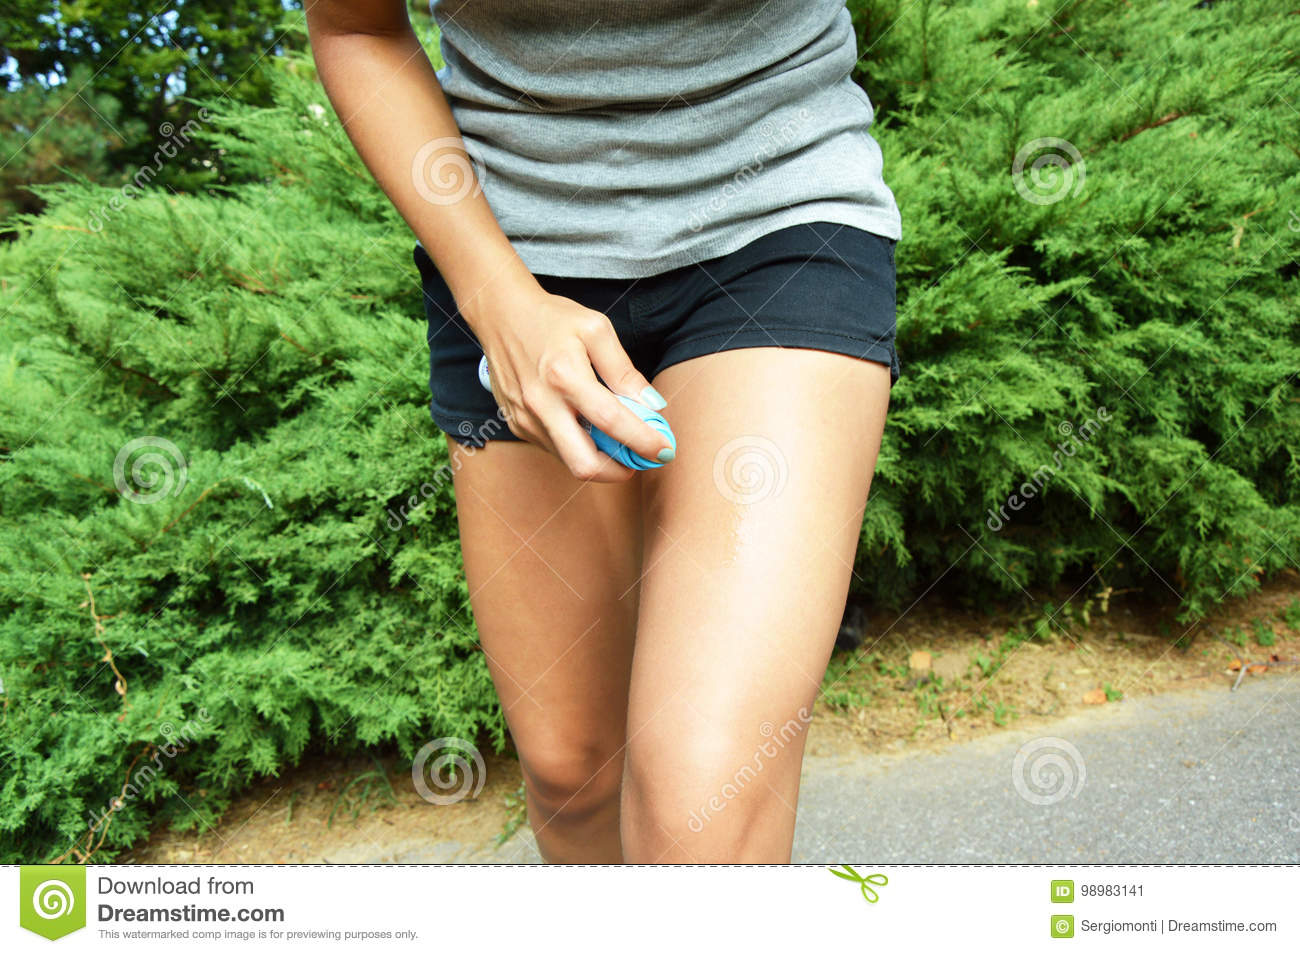 Mosquito repellent spray. Girl spraying insect repellent against bug bites on legs skin outdoor in nature forest using spray